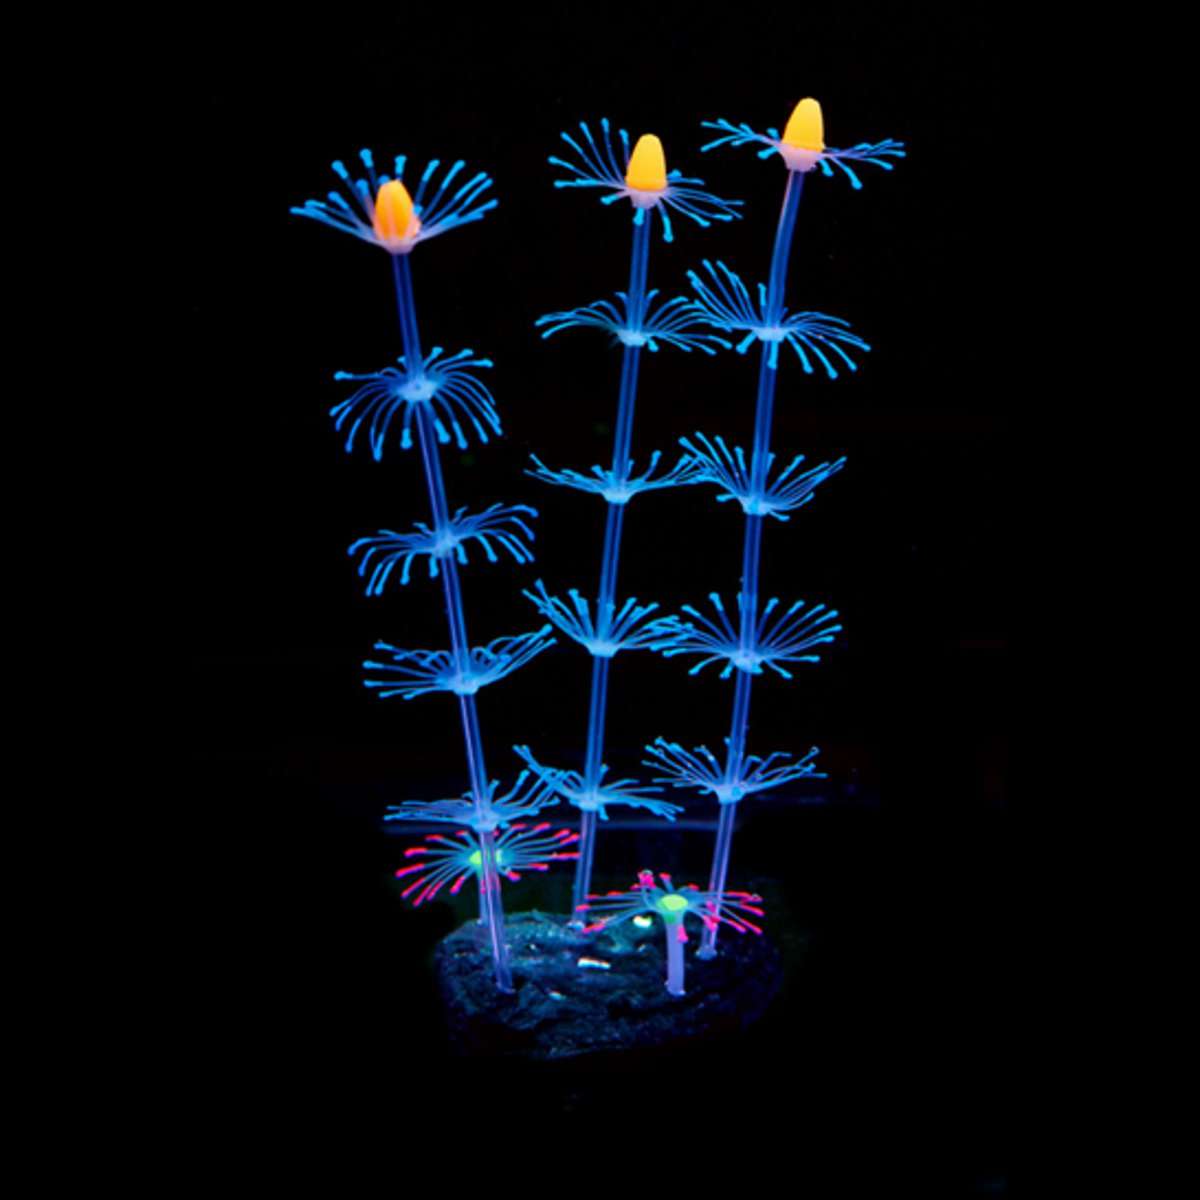 Fluorescent Coral Plant Aquarium Decoration Glow In The Dark Fish Tank Ornament